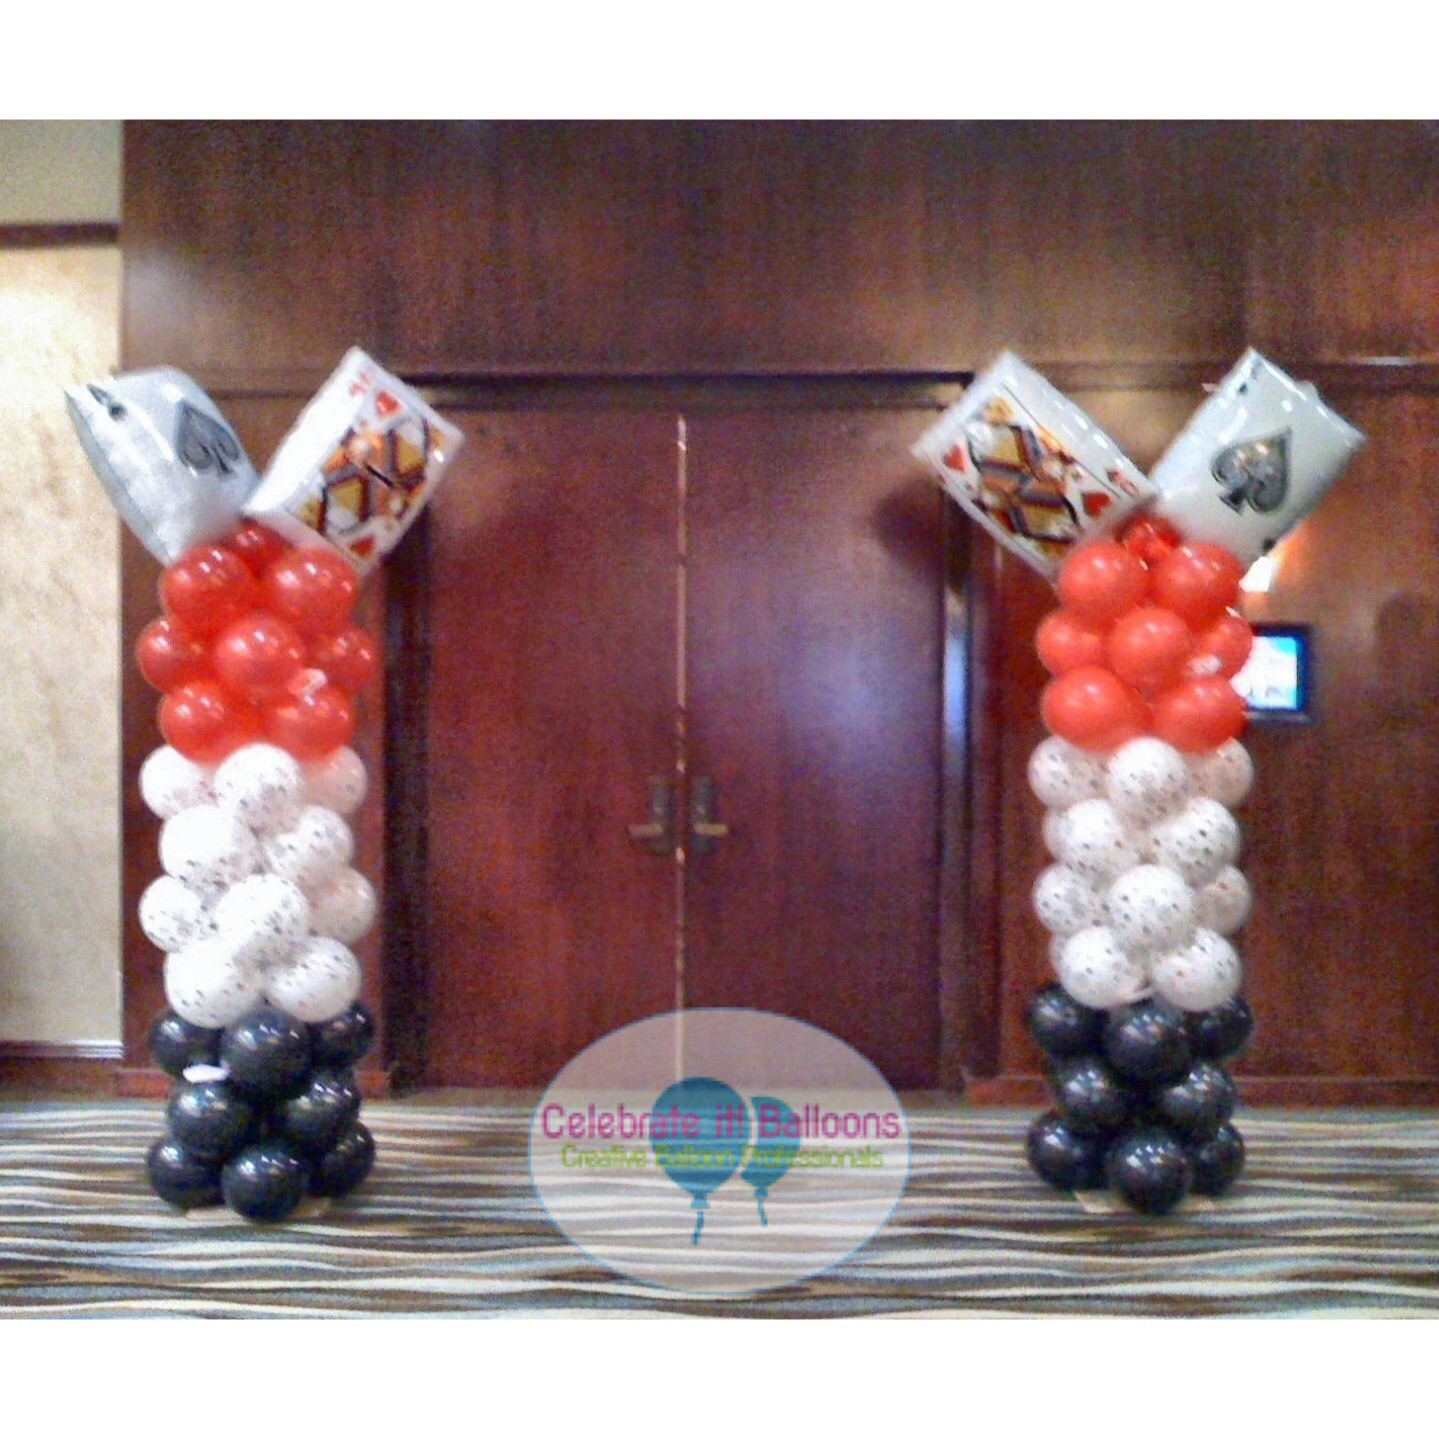 Casino theme balloon columns with jumbo playing card balloons on top